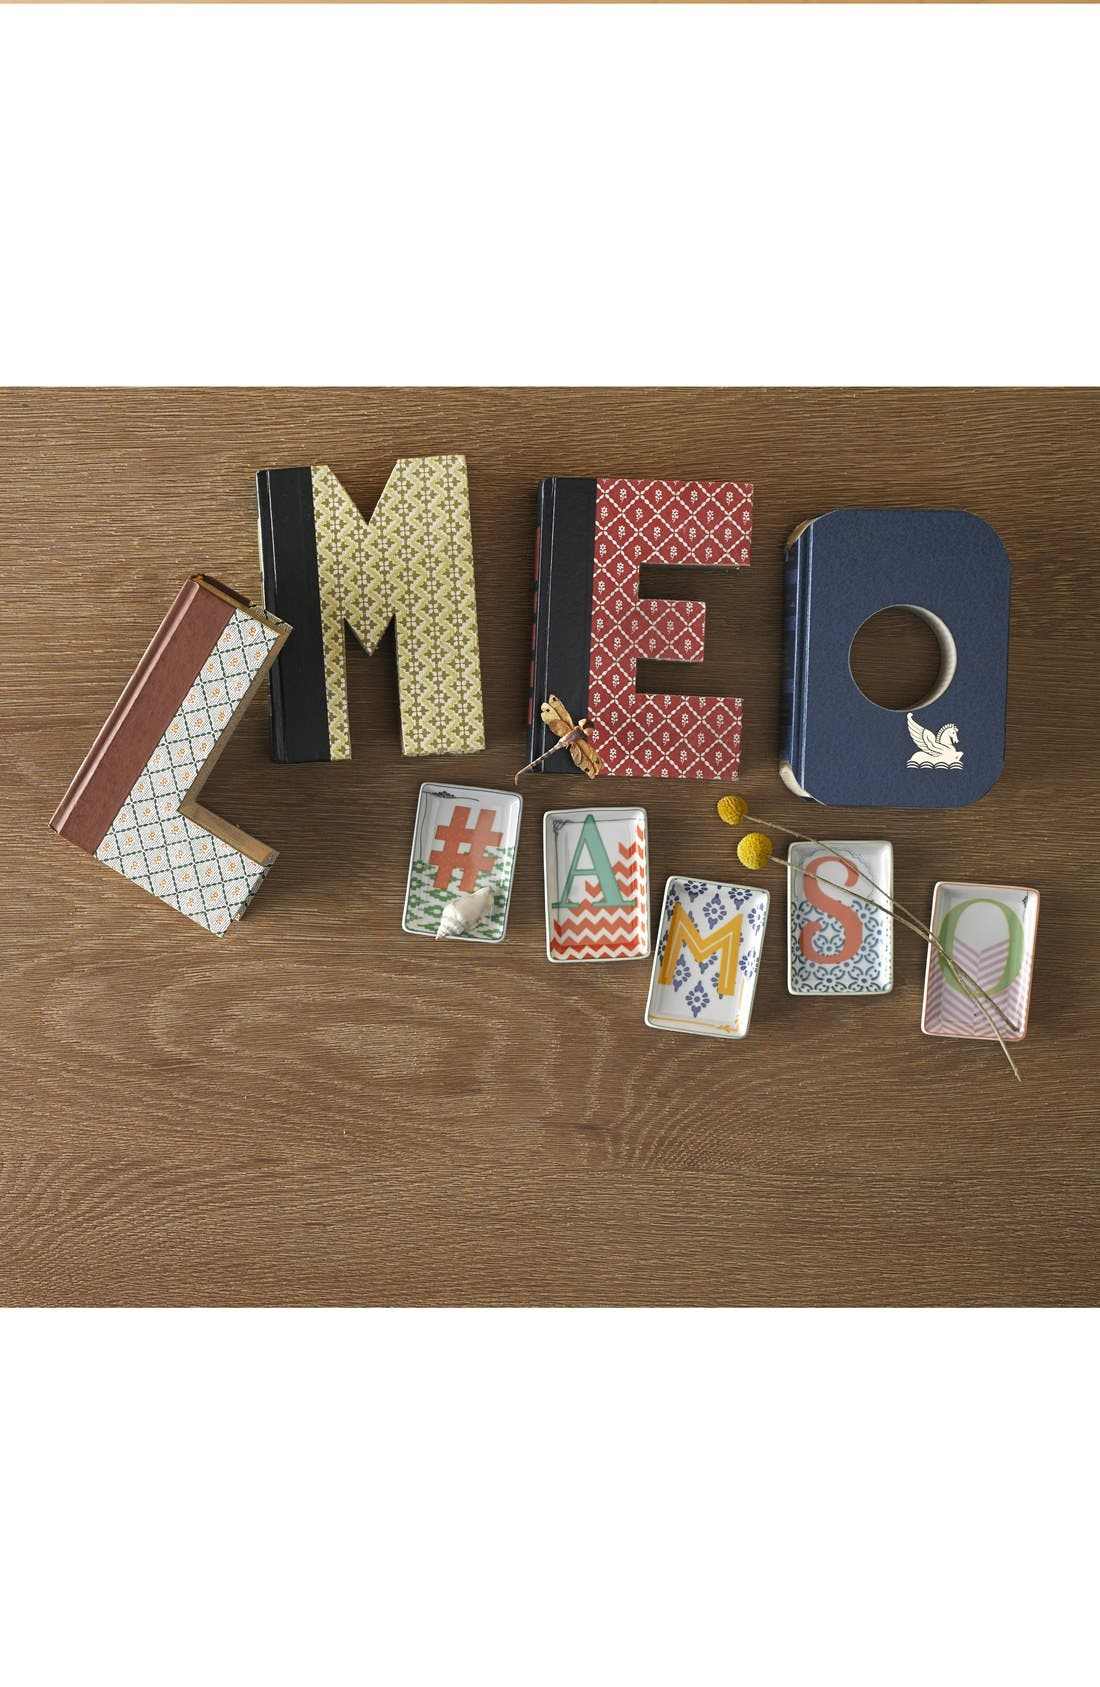 ,                             'One of a Kind Letter' Hand-Carved Recycled Book Shelf Art,                             Alternate thumbnail 2, color,                             200